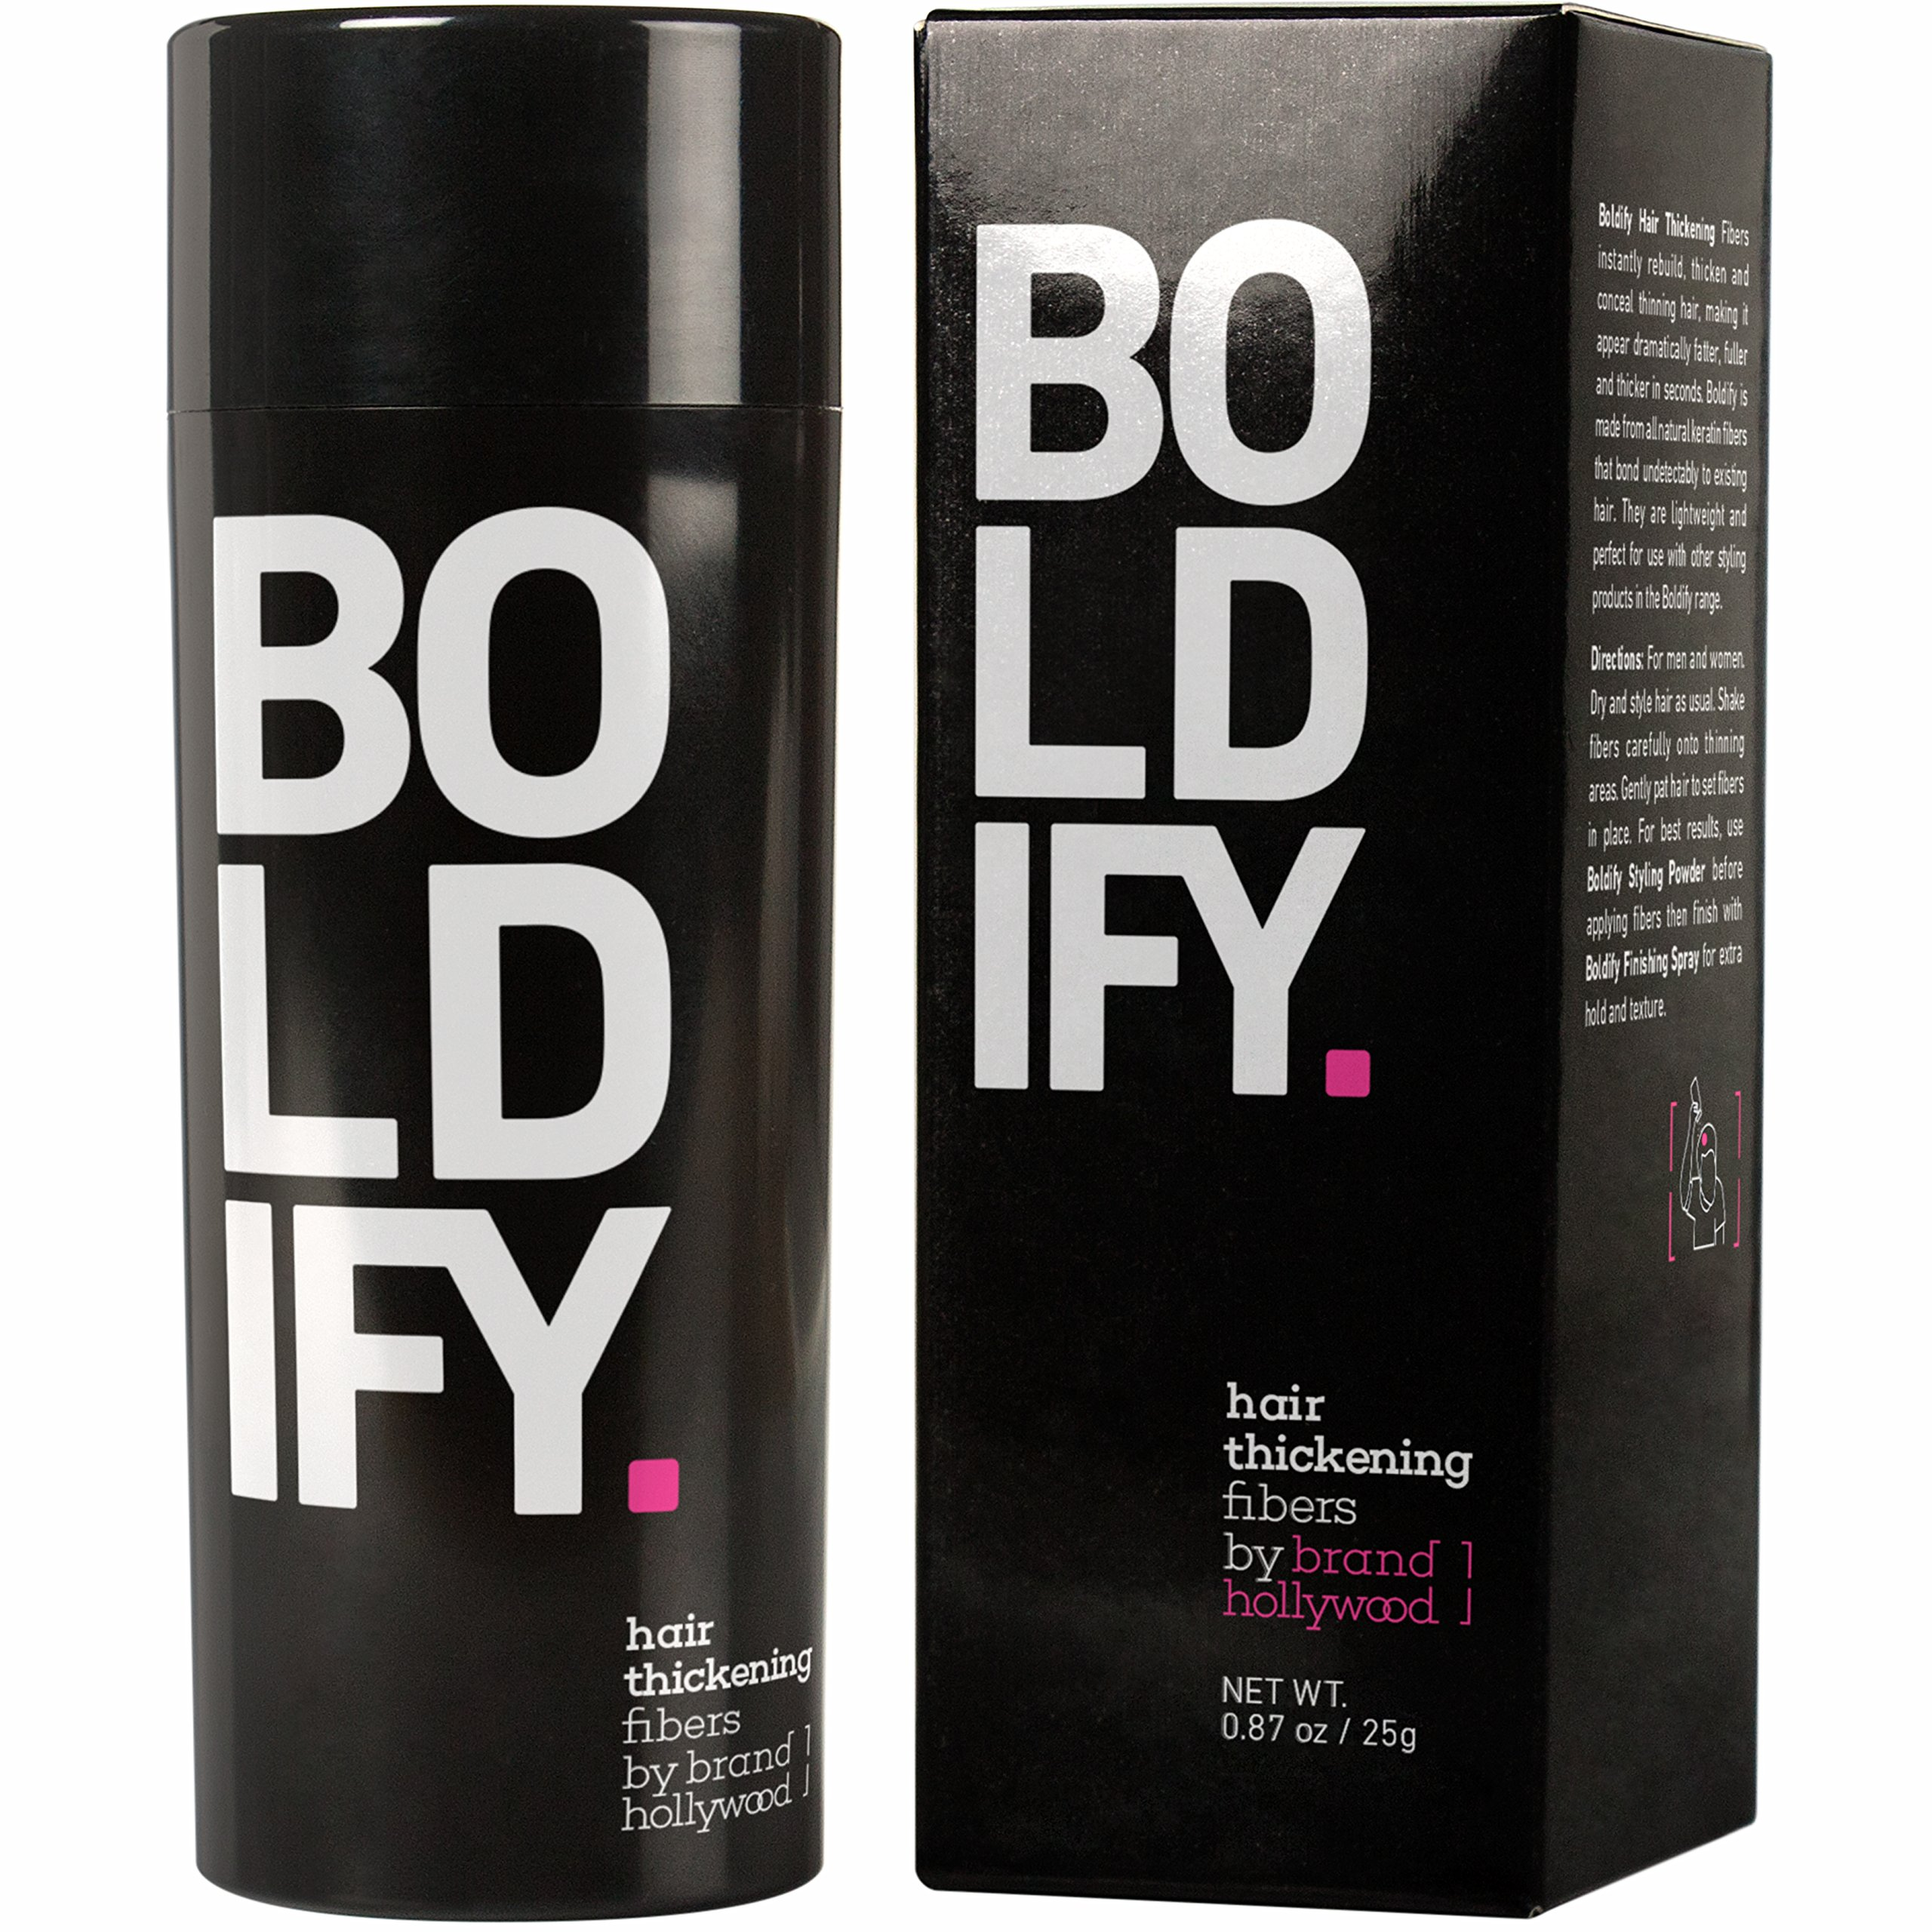 BOLDIFY Hair Fibers for Thinning Hair - 100% Undetectable Natural Formula - Completely Conceals Hair Loss in 15 Seconds - 25 Grams (Dark Brown) by Boldify